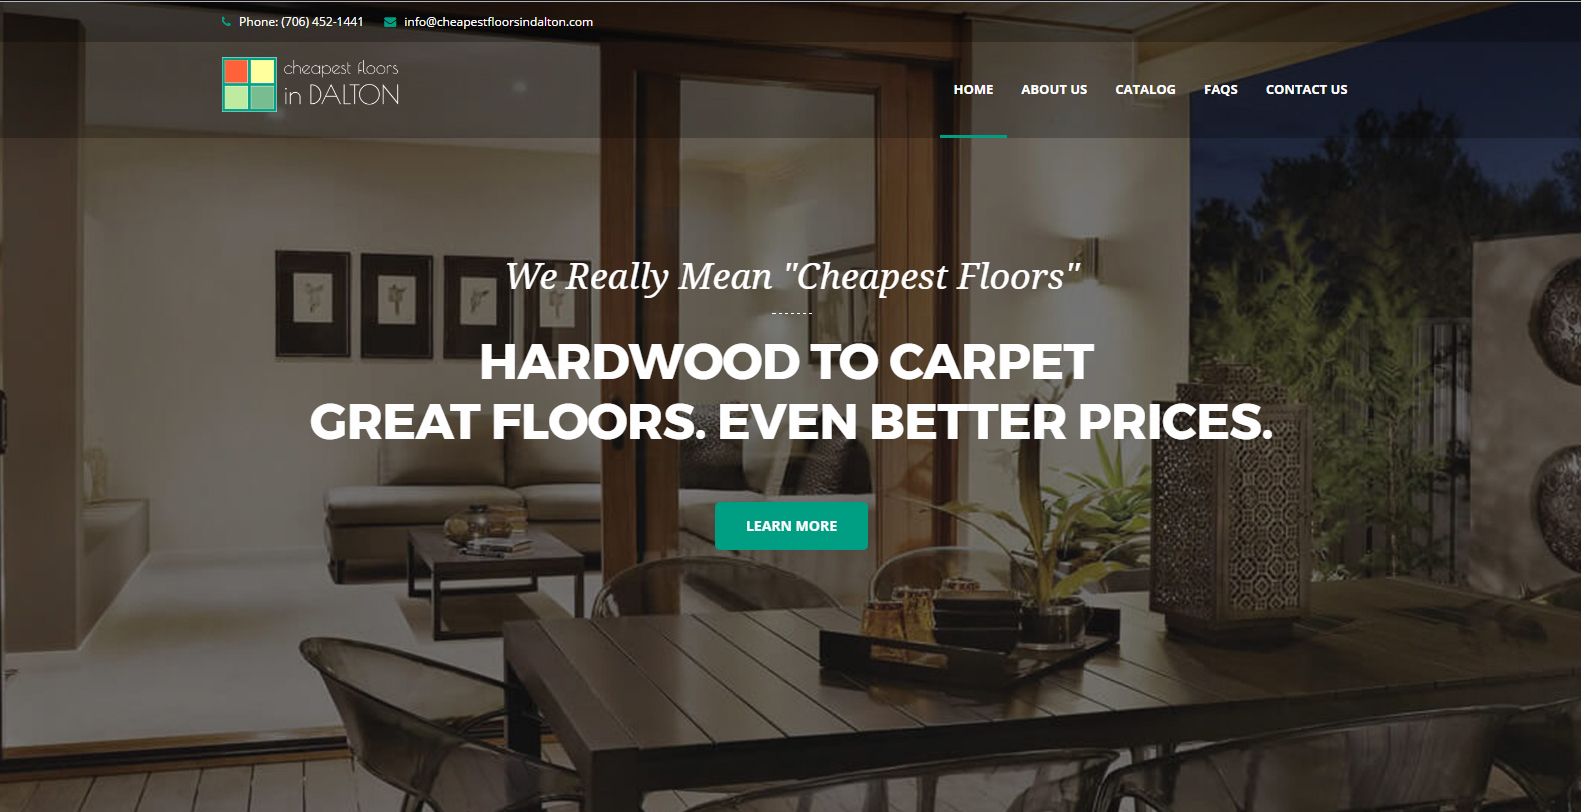 Cheapest Floors in Dalton Web Design and Marketing